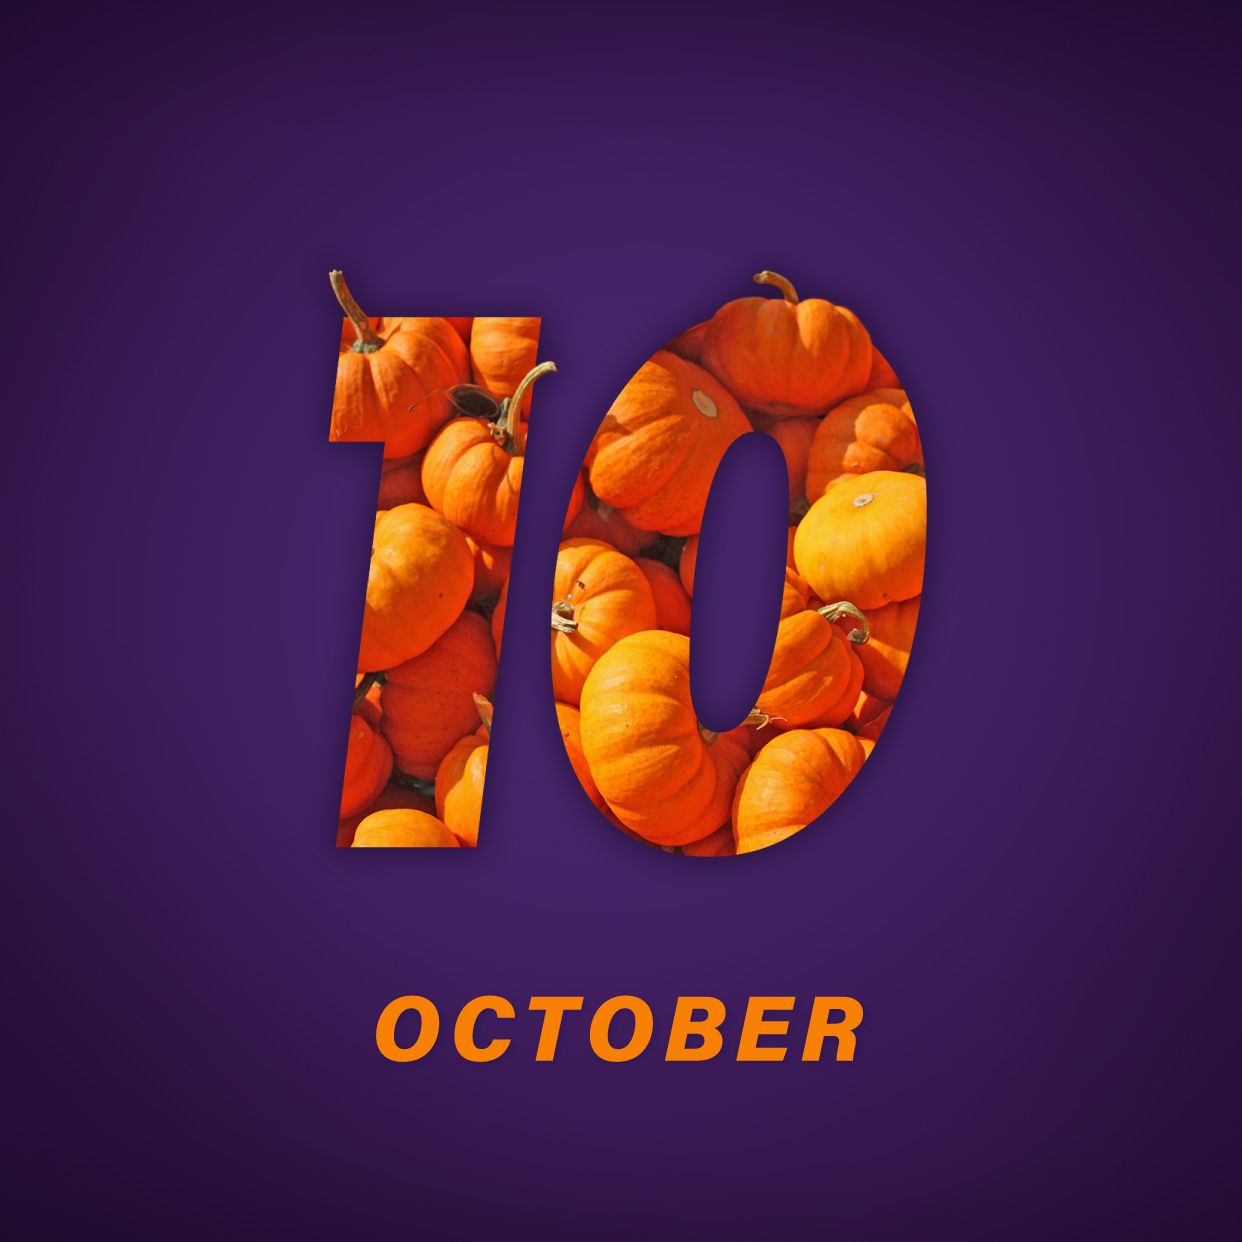 Can you believe were already at the spookiest time of the